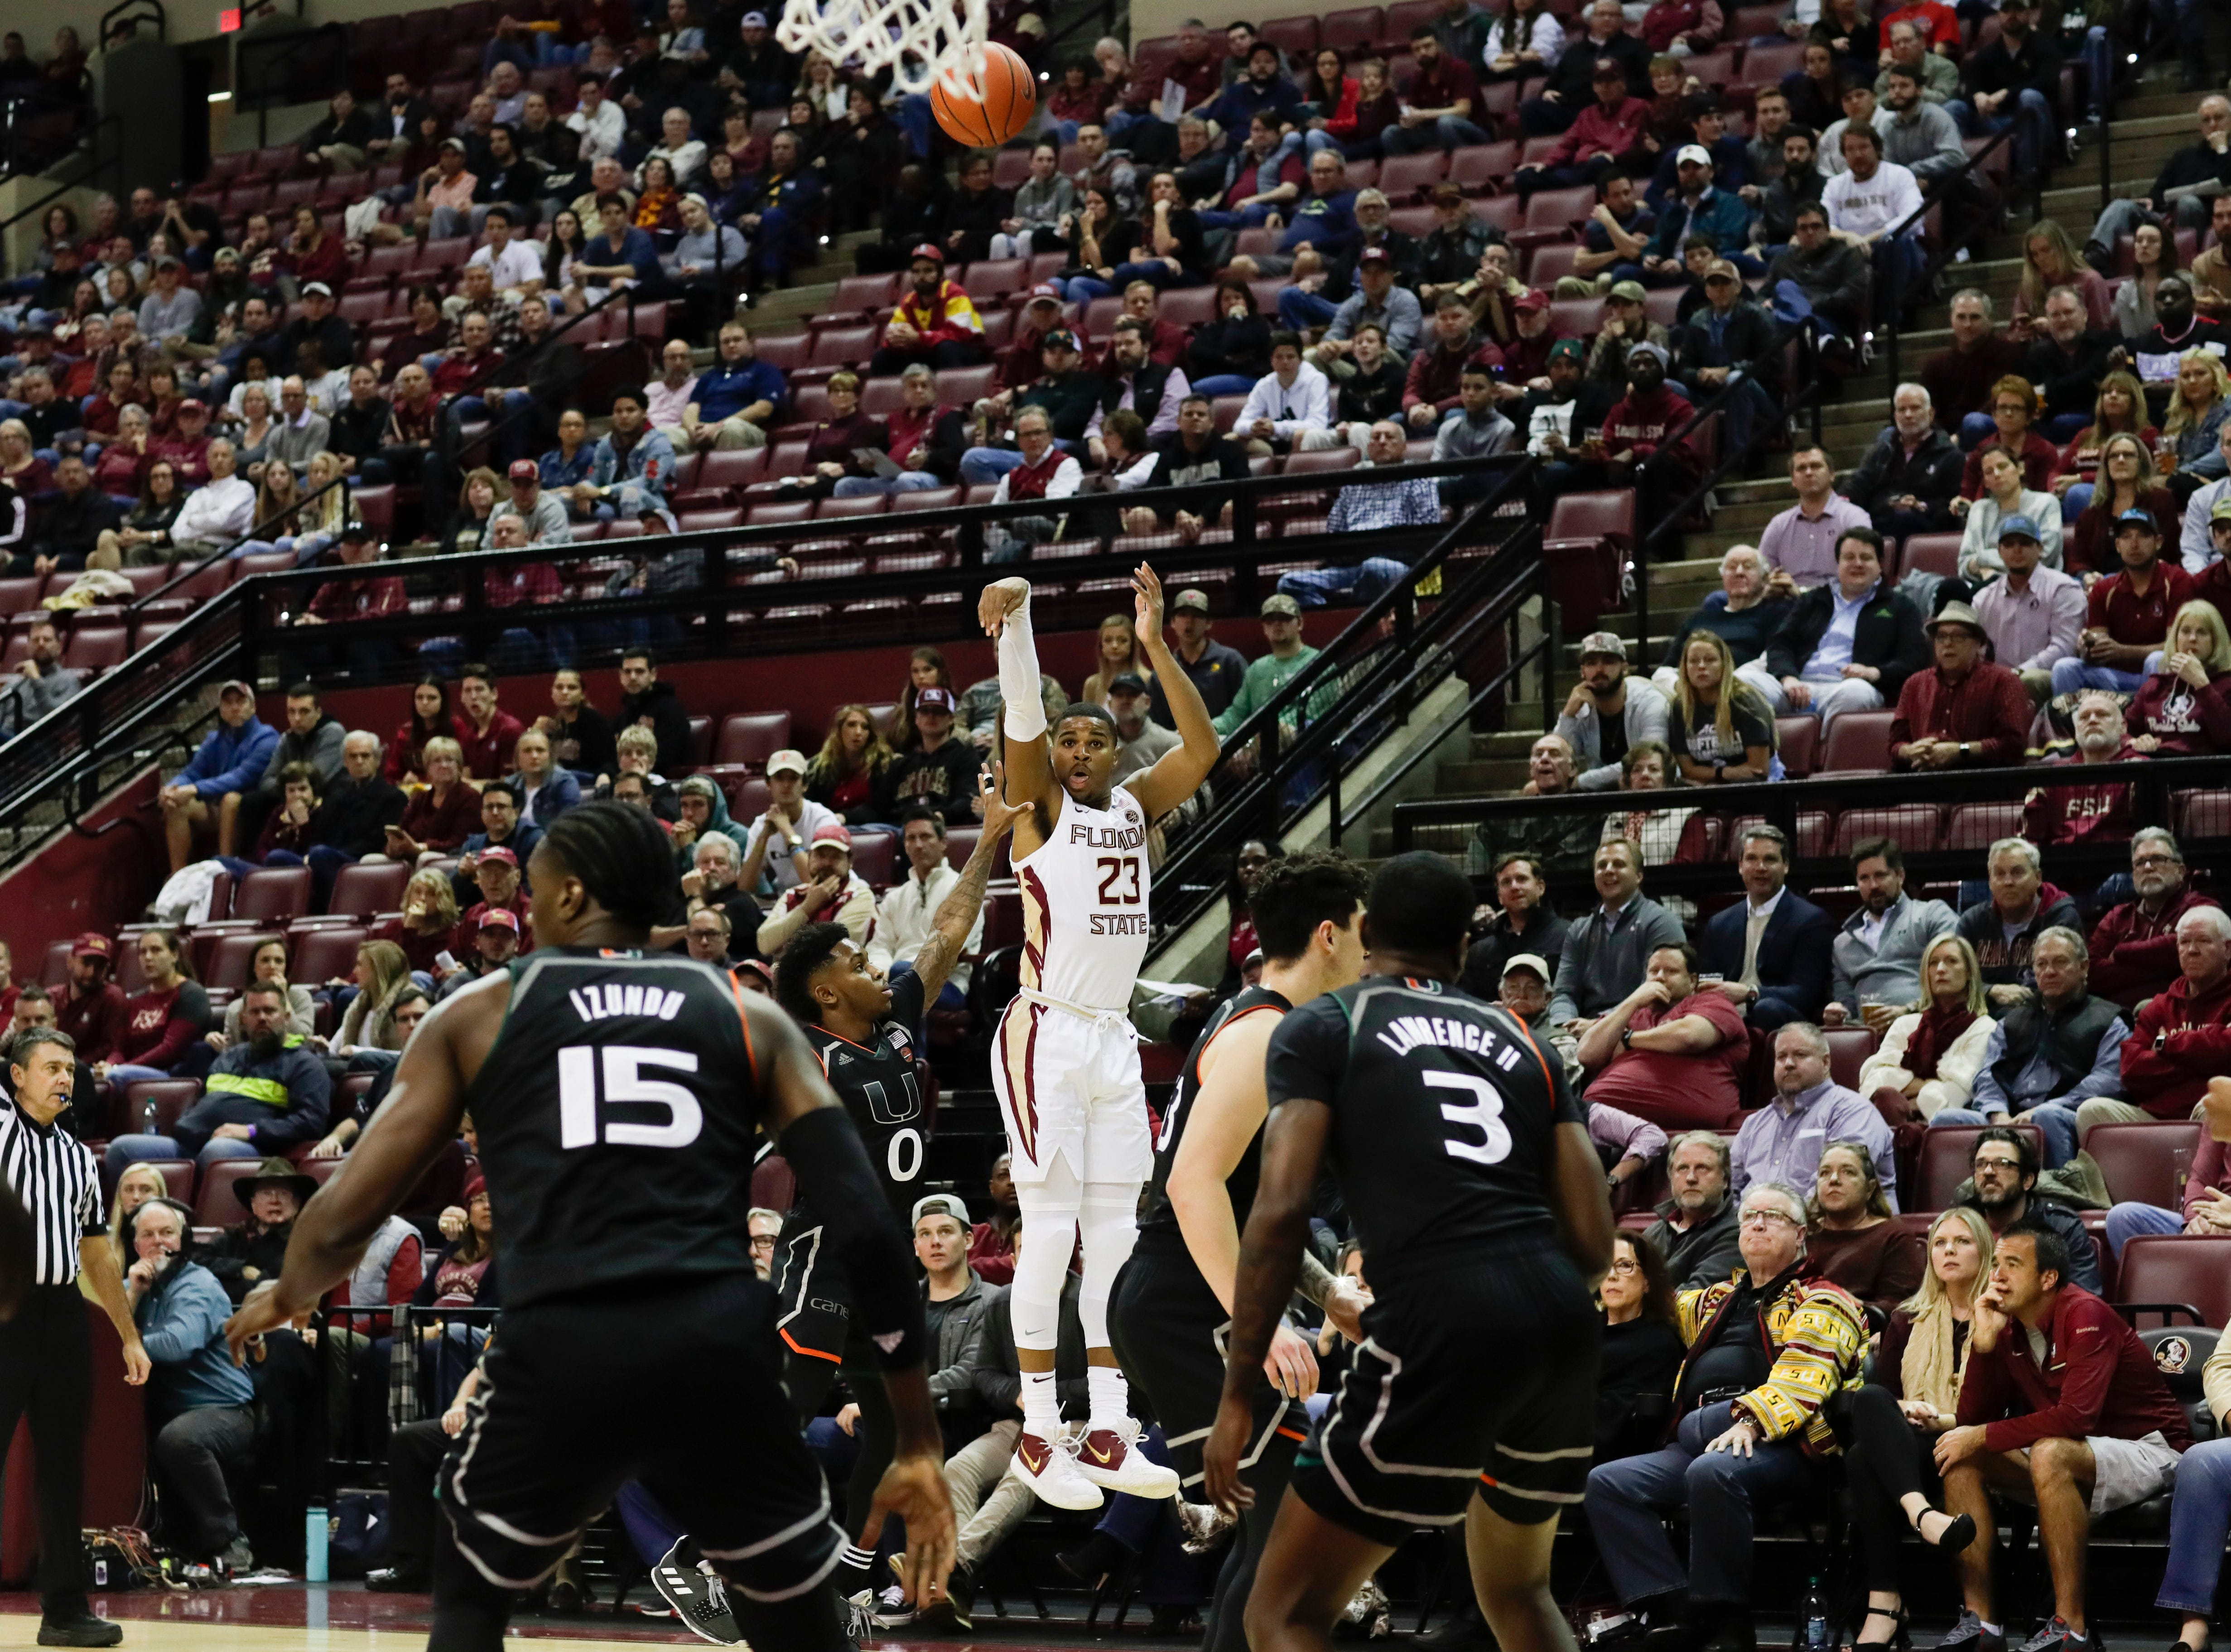 Florida State Seminoles guard M.J. Walker (23) shoots a three during a game between FSU and University of Miami Wednesday, Jan. 9, 2019.